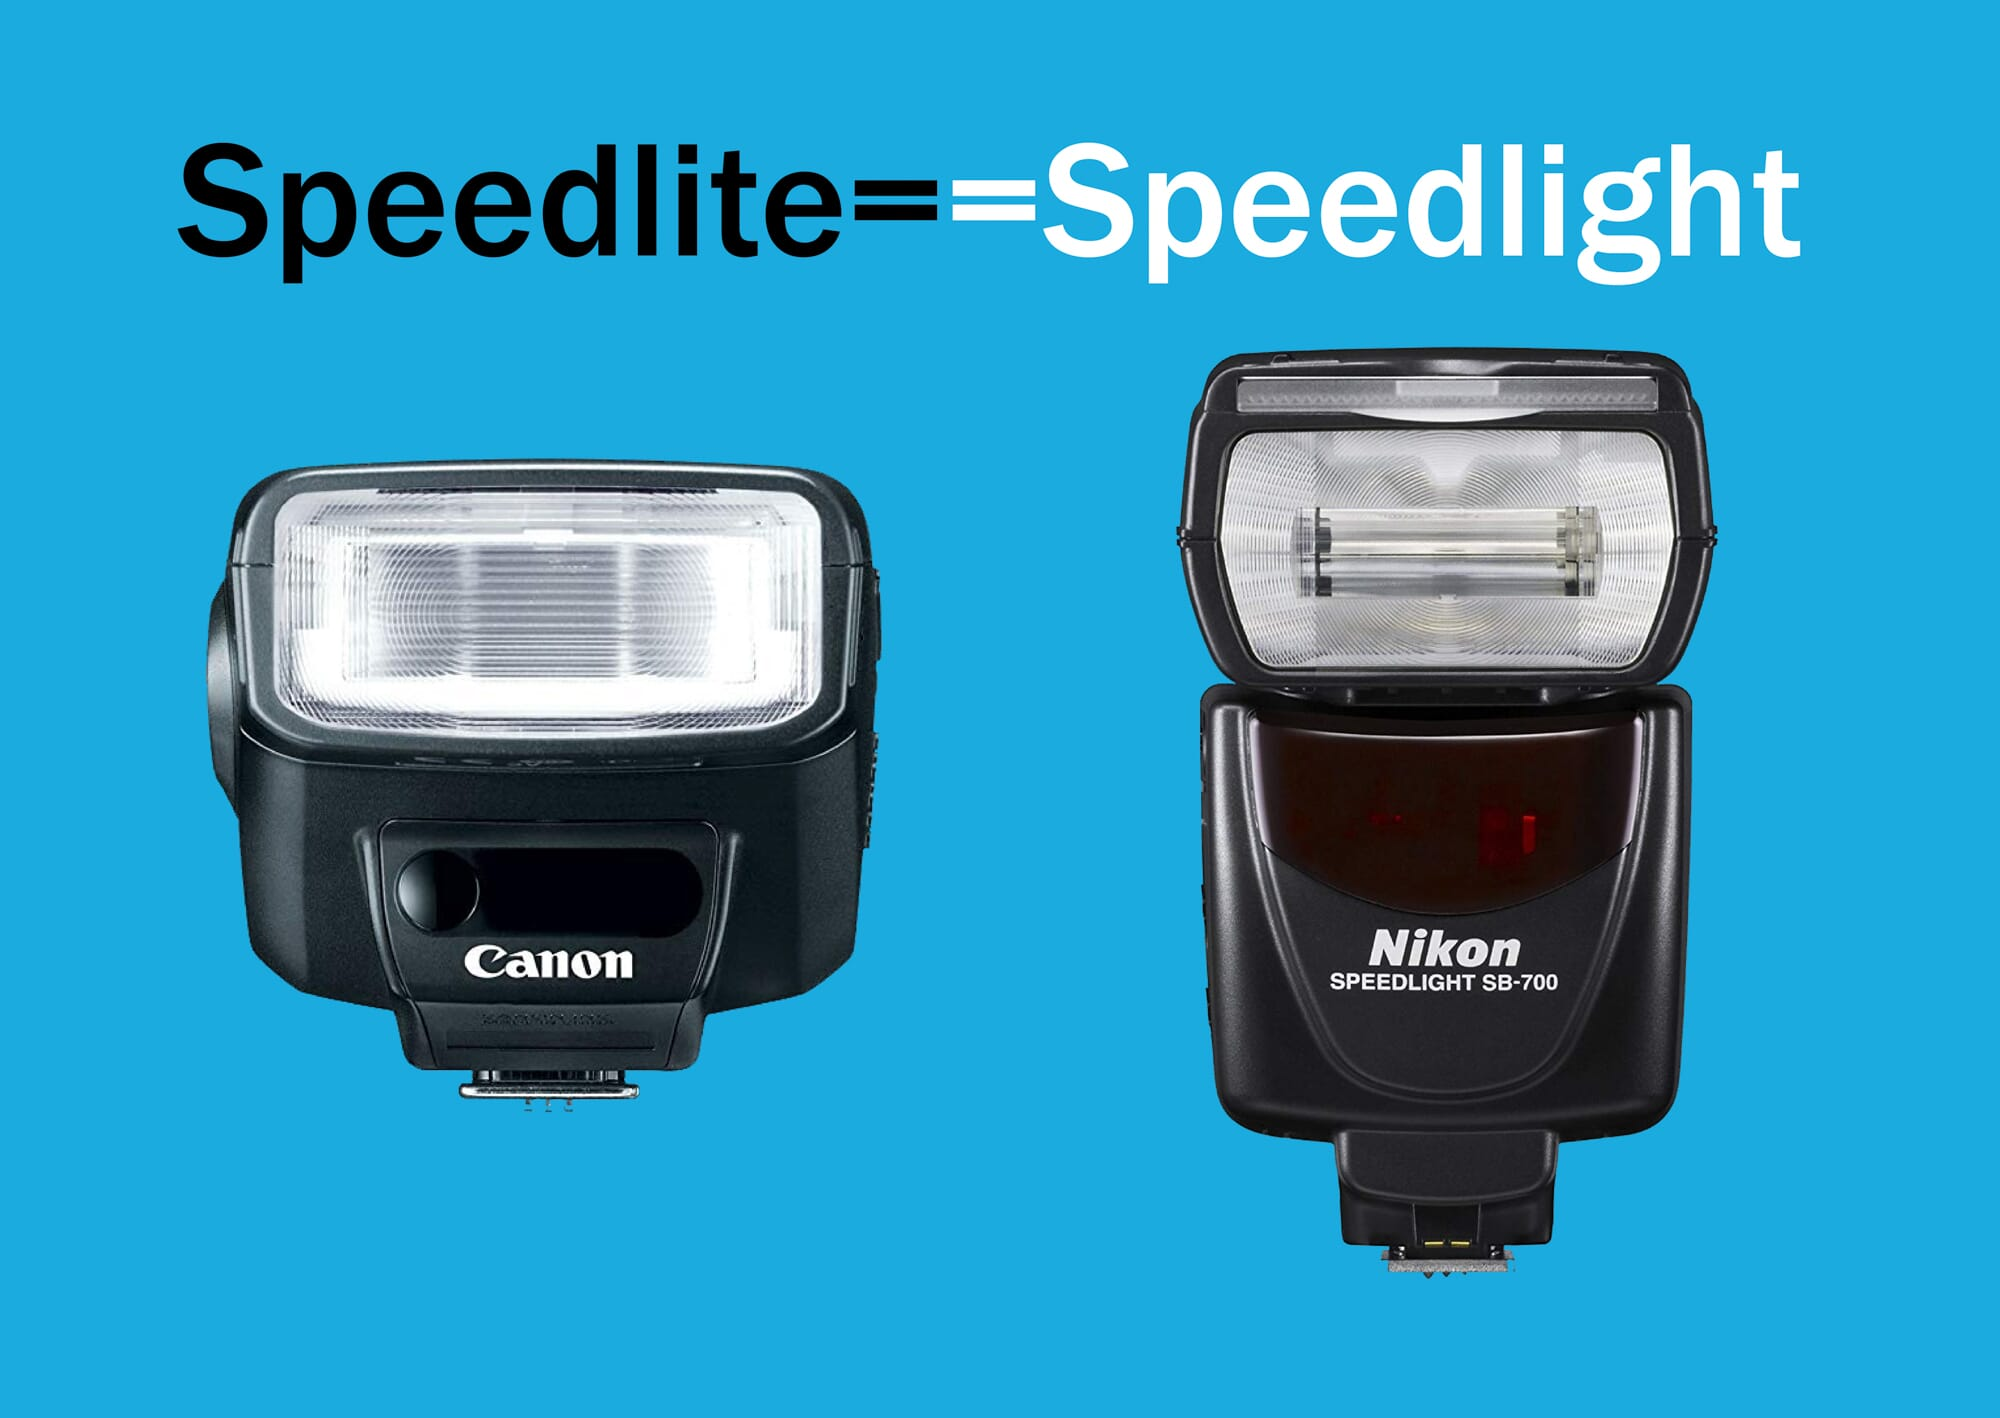 speedlight vs speedlite